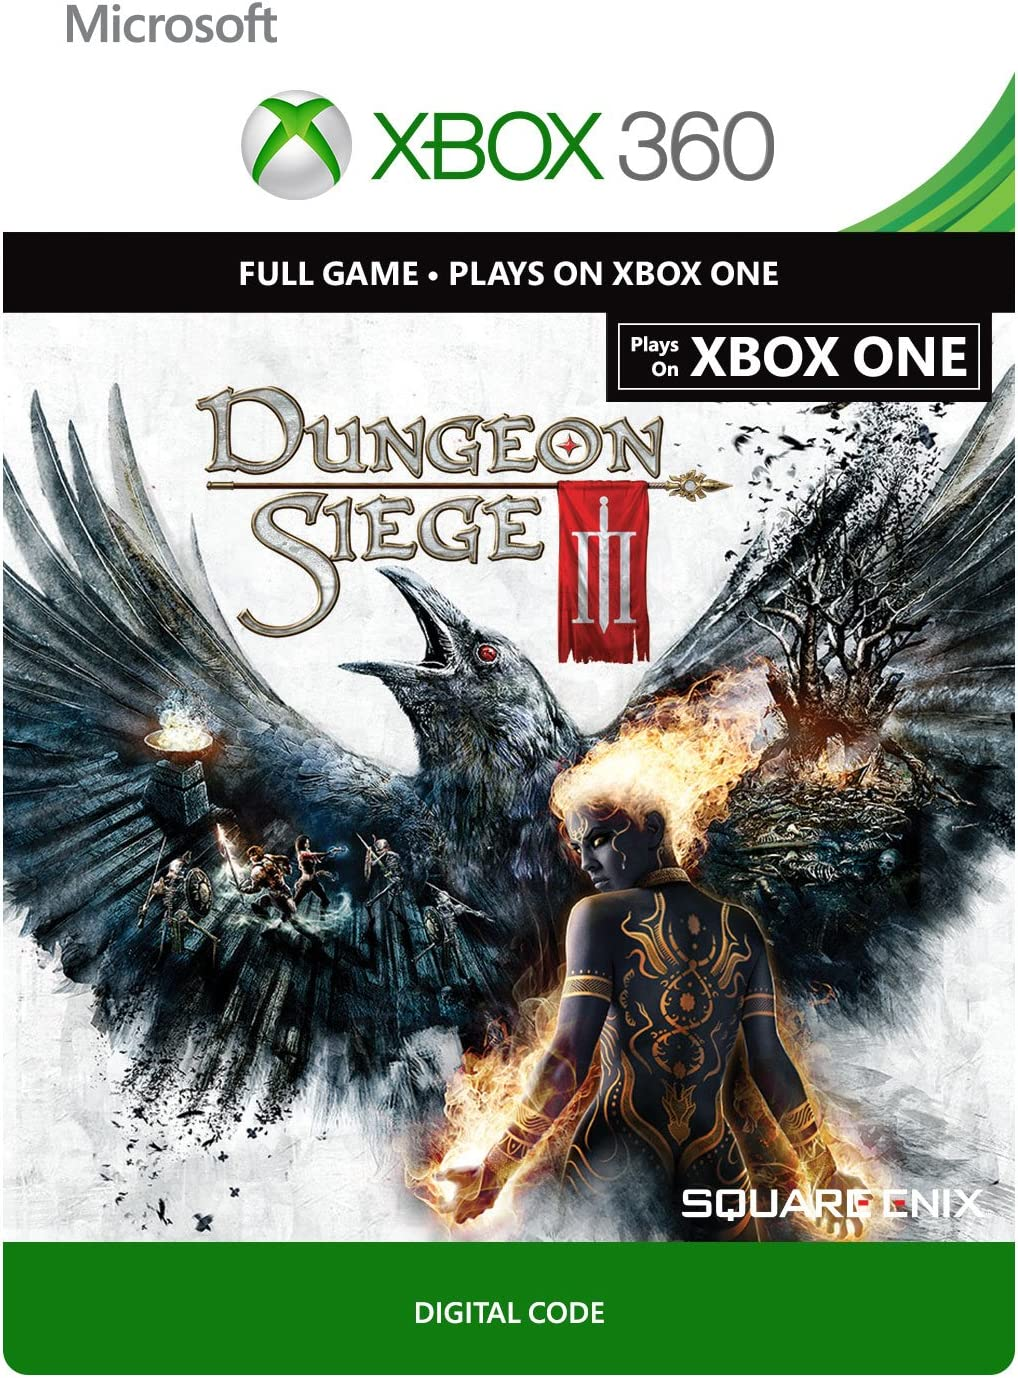 Amazon.com: Dungeon Siege III - Xbox 360 / Xbox One Digital ...